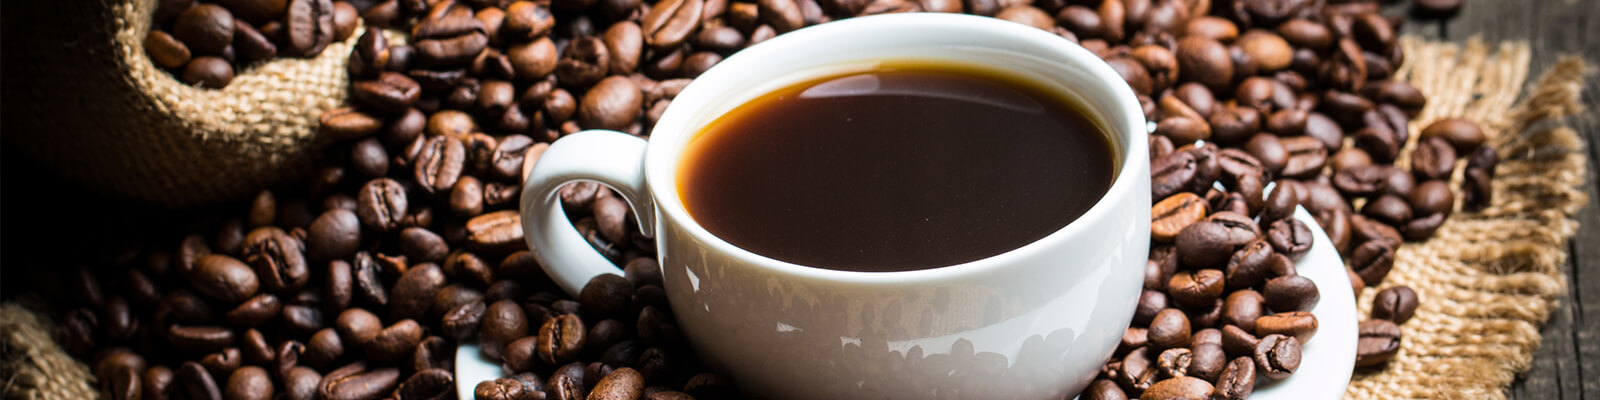 Is Coffee Good or Bad for an Enlarged Prostate? | BPH and Caffeine